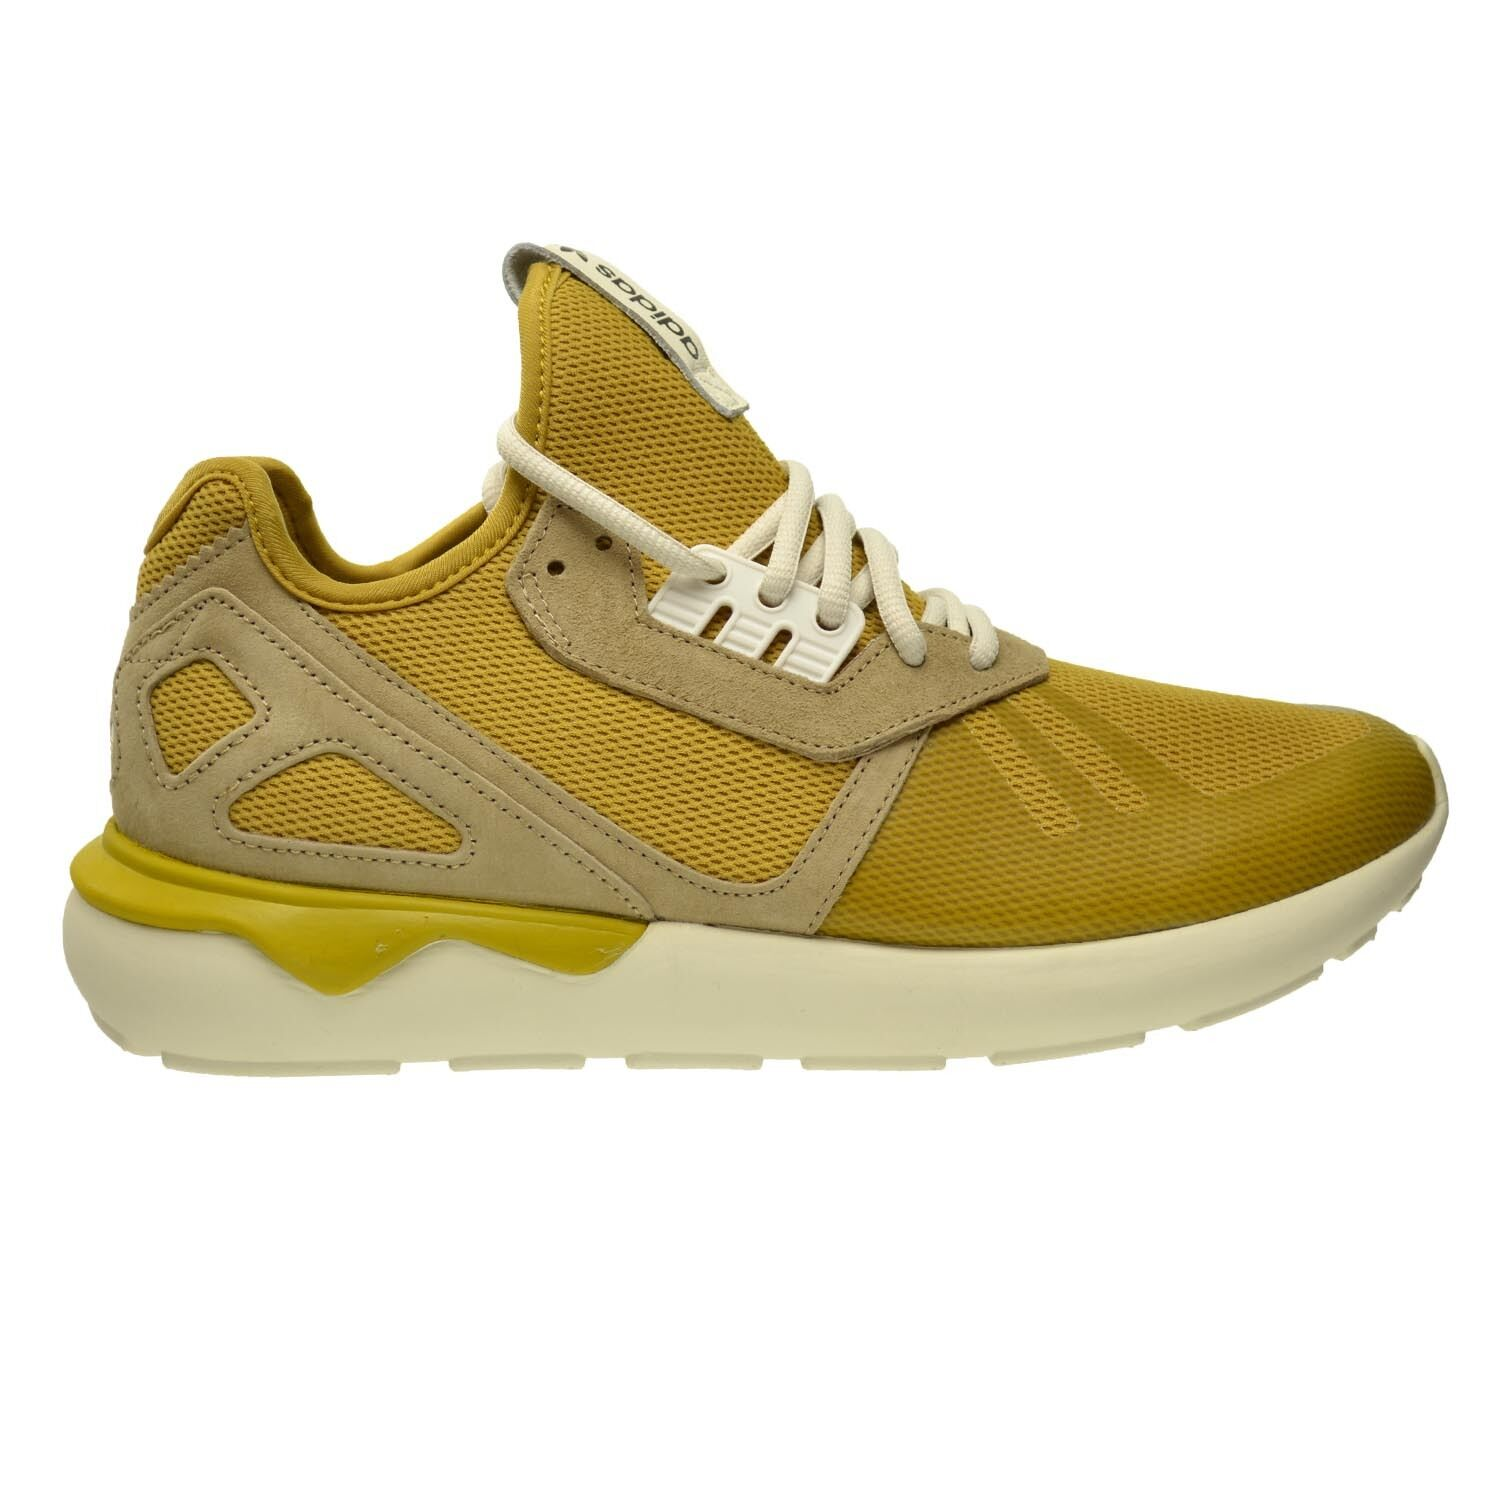 Adidas Tubular Runnner Men's Shoes Spice Yellow/Clear Sand/Legacy White b23886